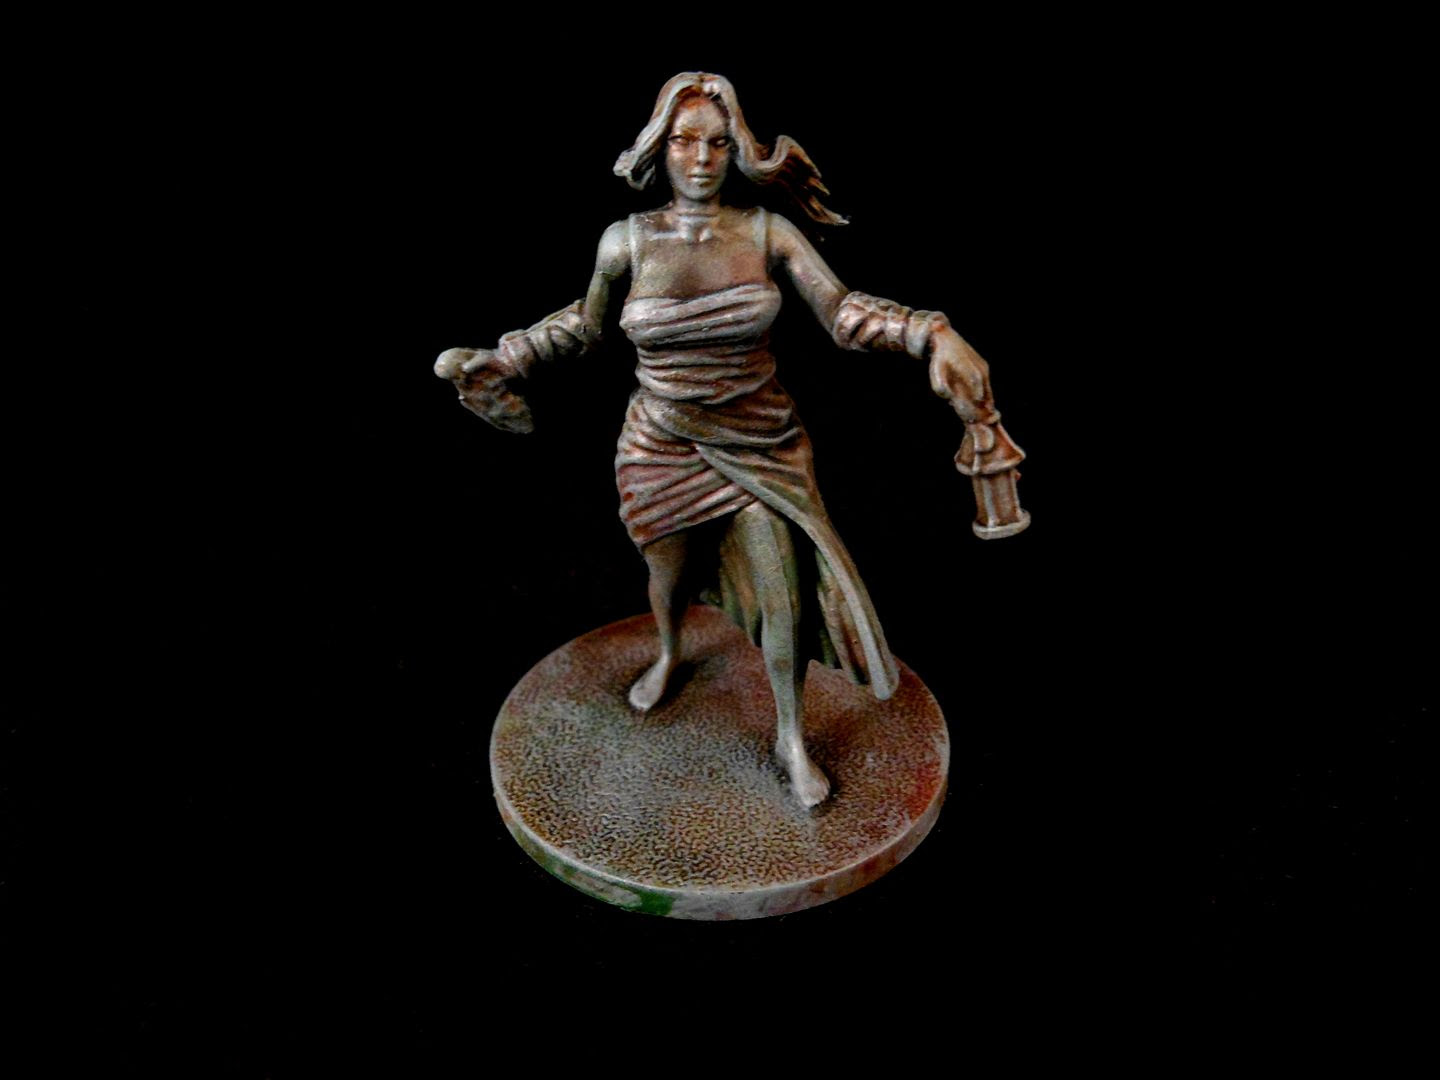 A femeal survivor from Kingdom Death: Monster with details highlighted by drybrushing.